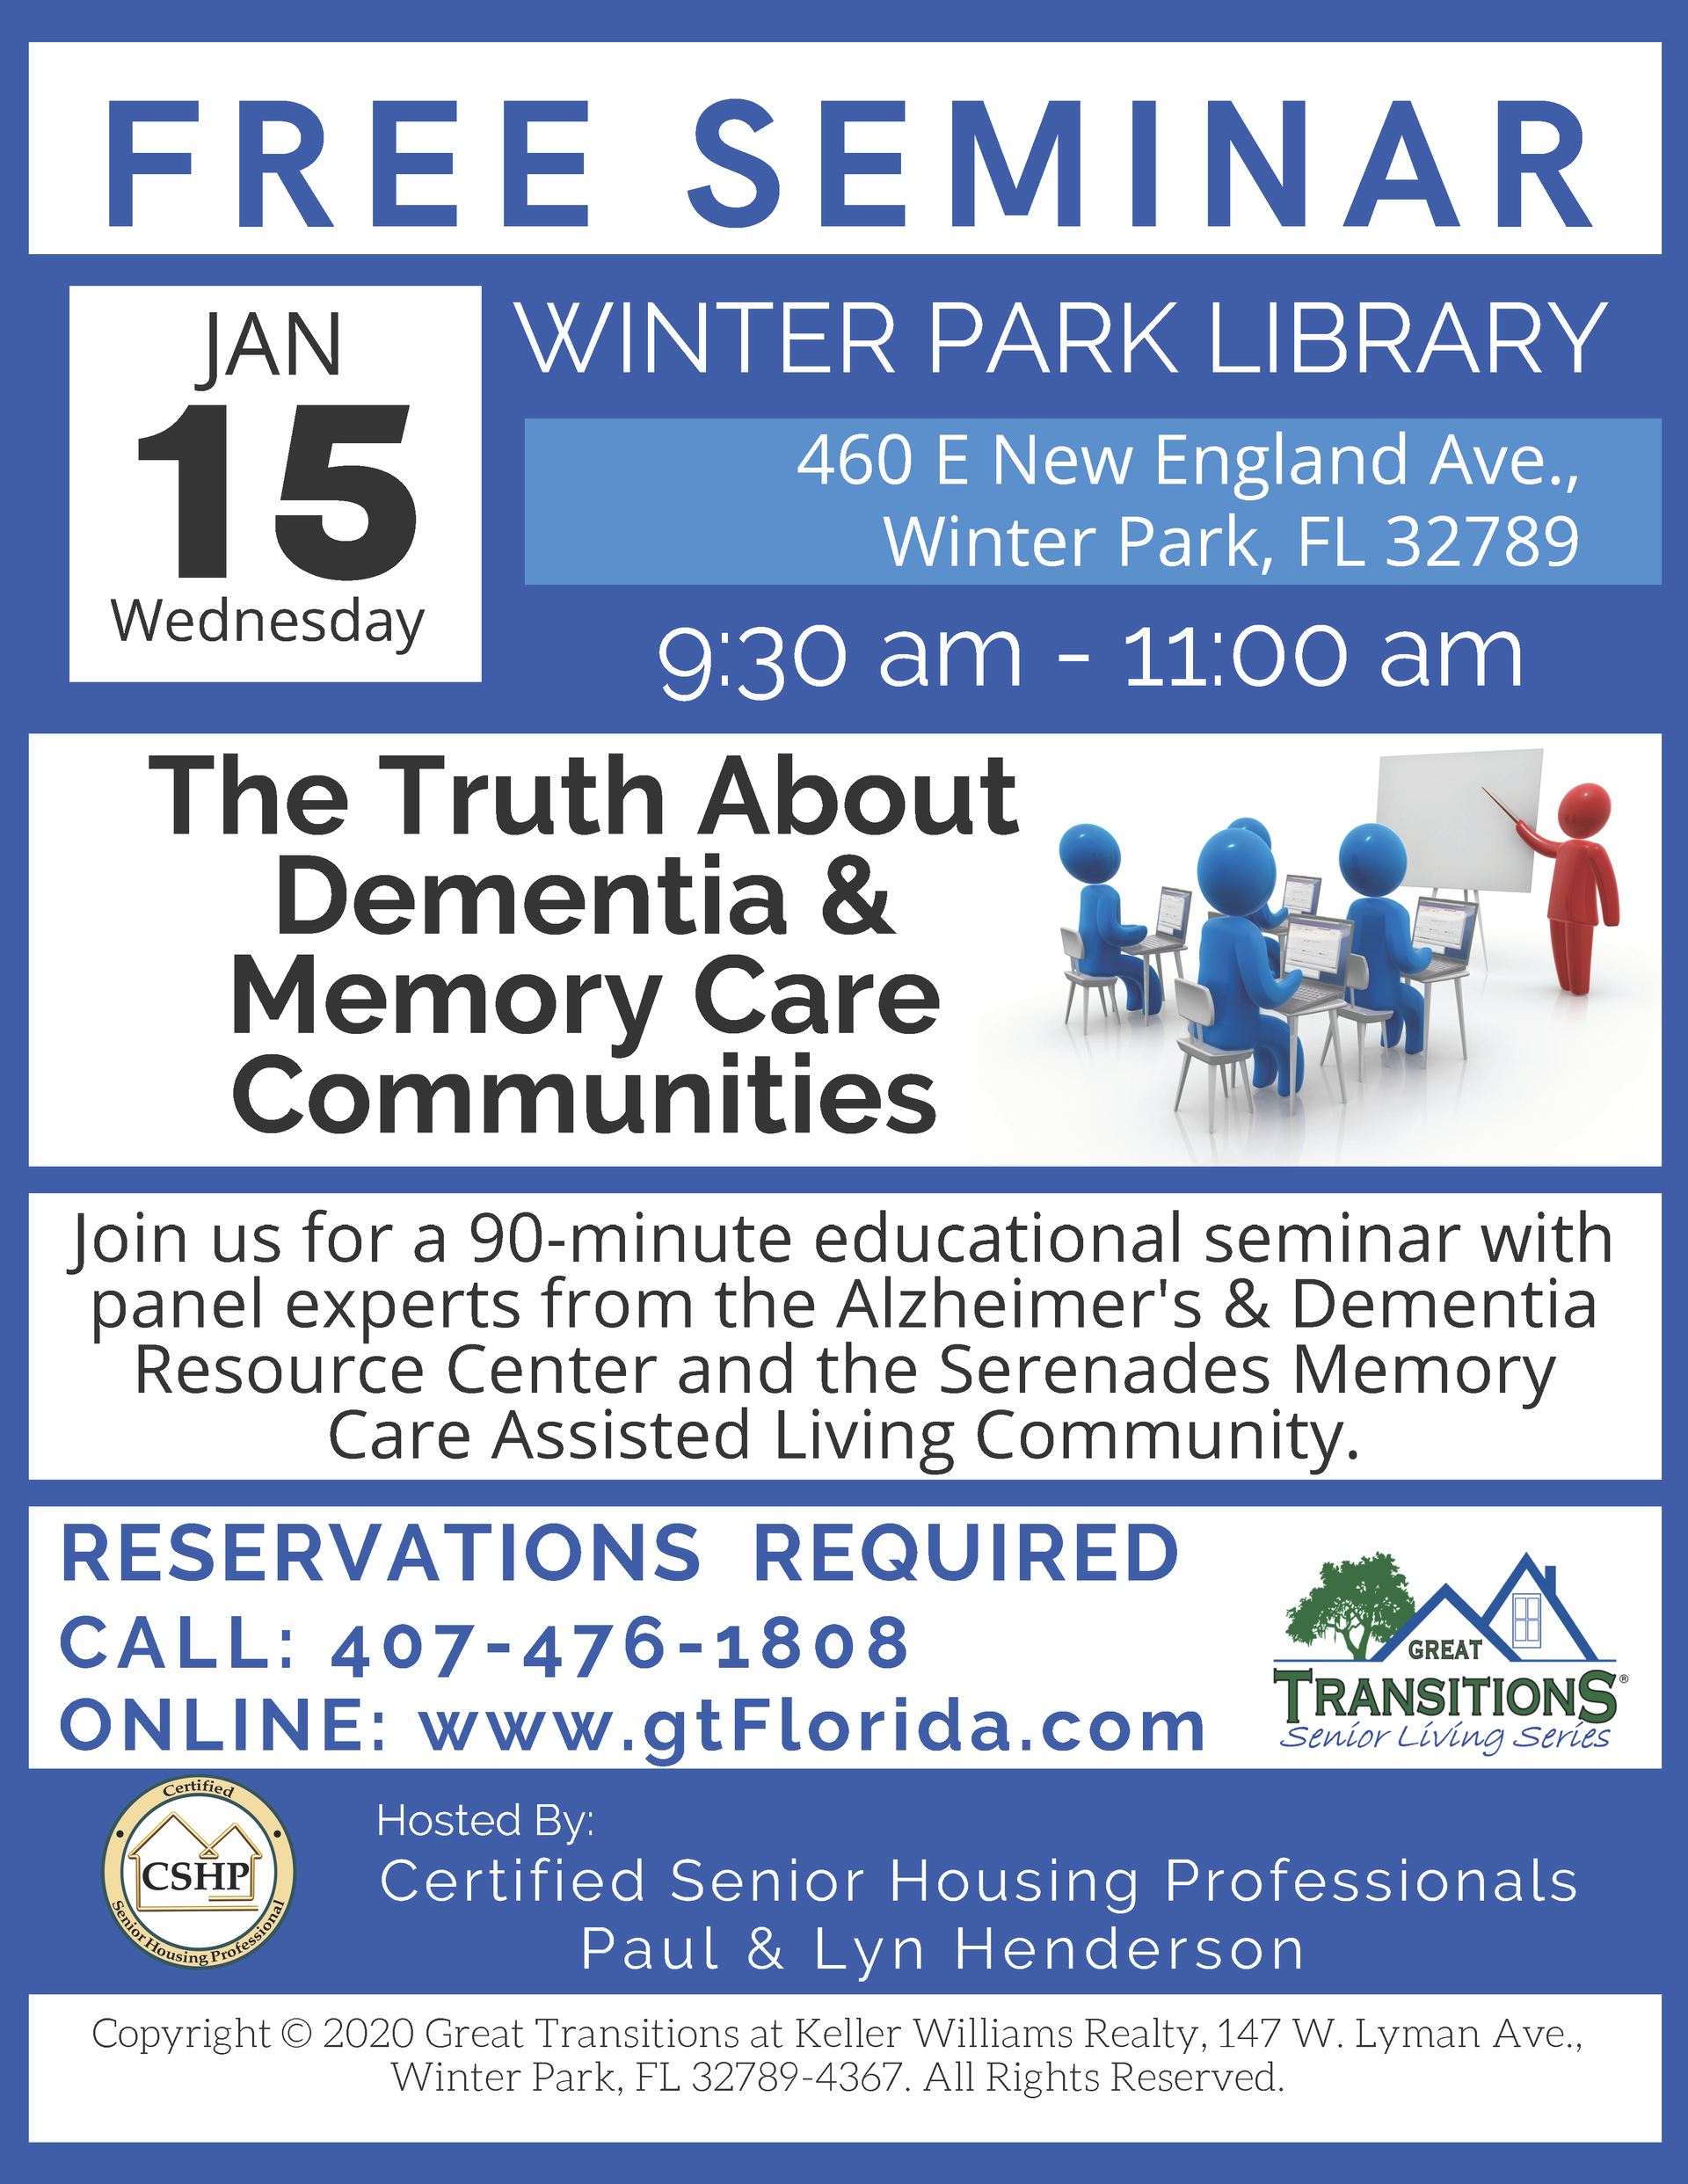 The Truth About Dementia & Memory Care Communities